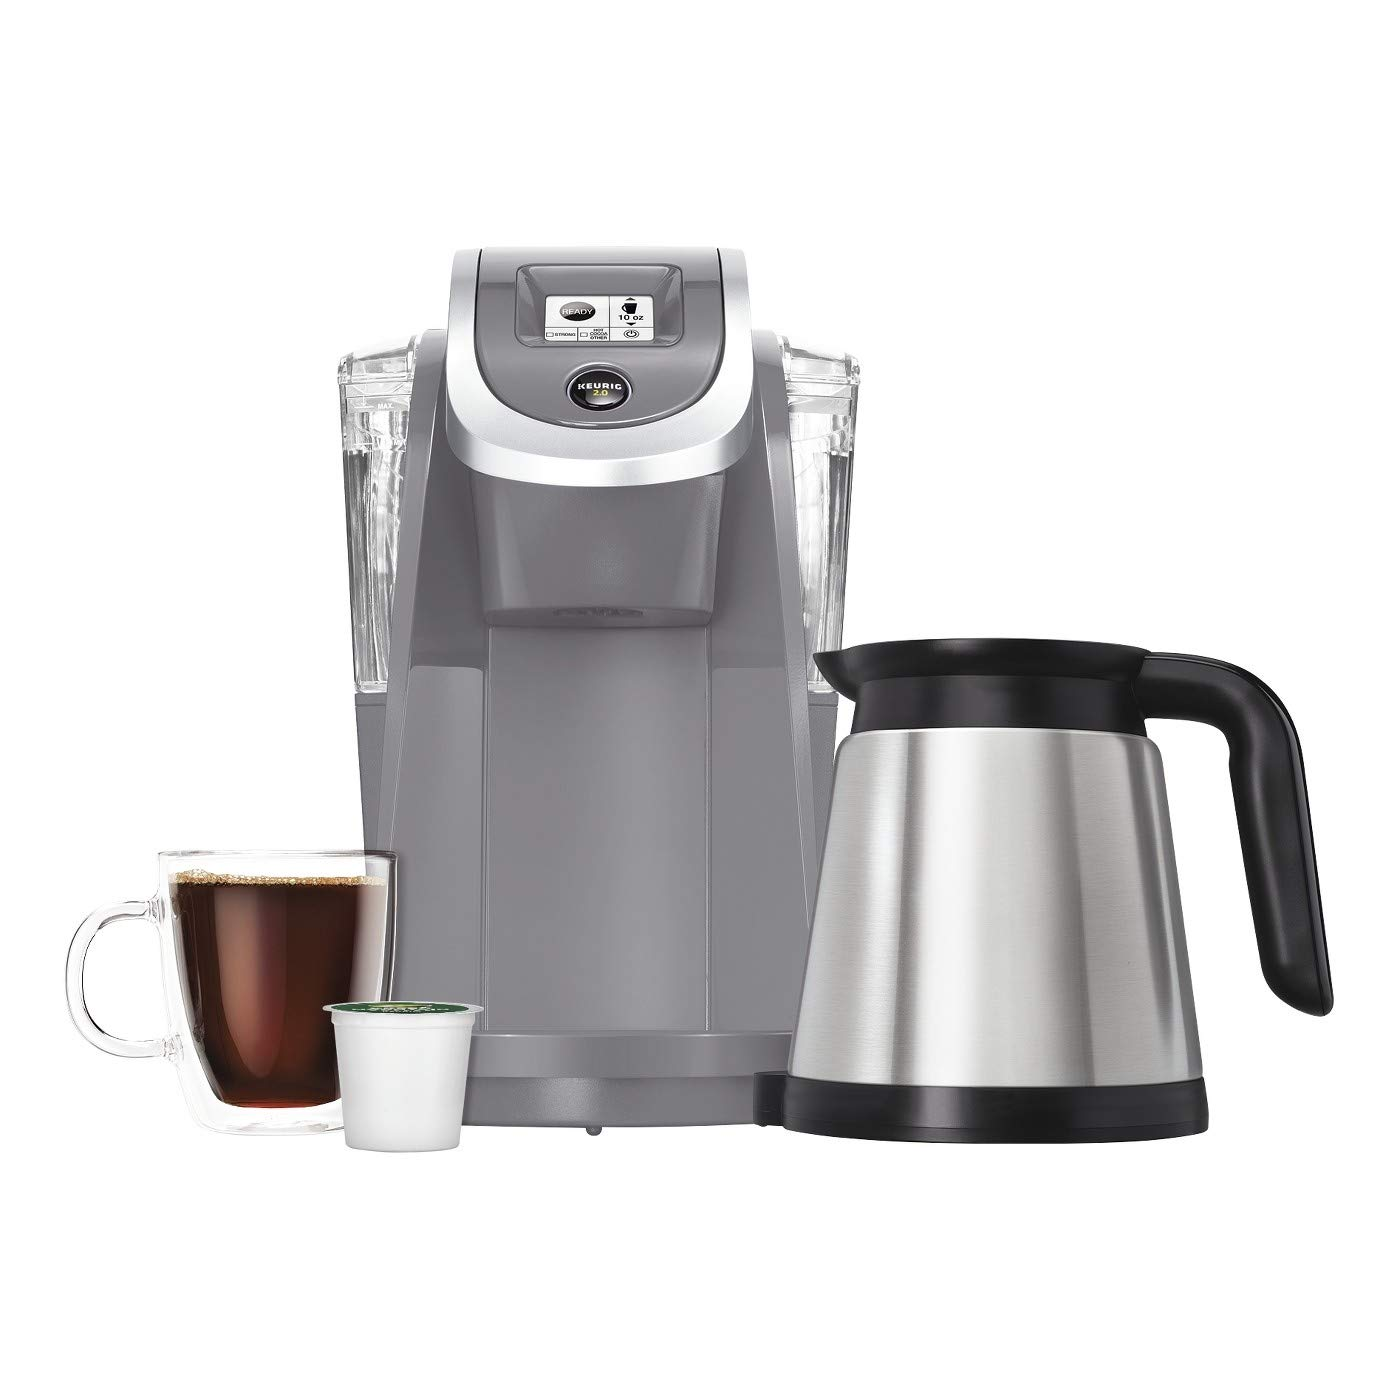 Keurig K200 Single Serve K-Cup Pod Coffee Maker - Cashmere Gray - Limited Edition - Home And Garden